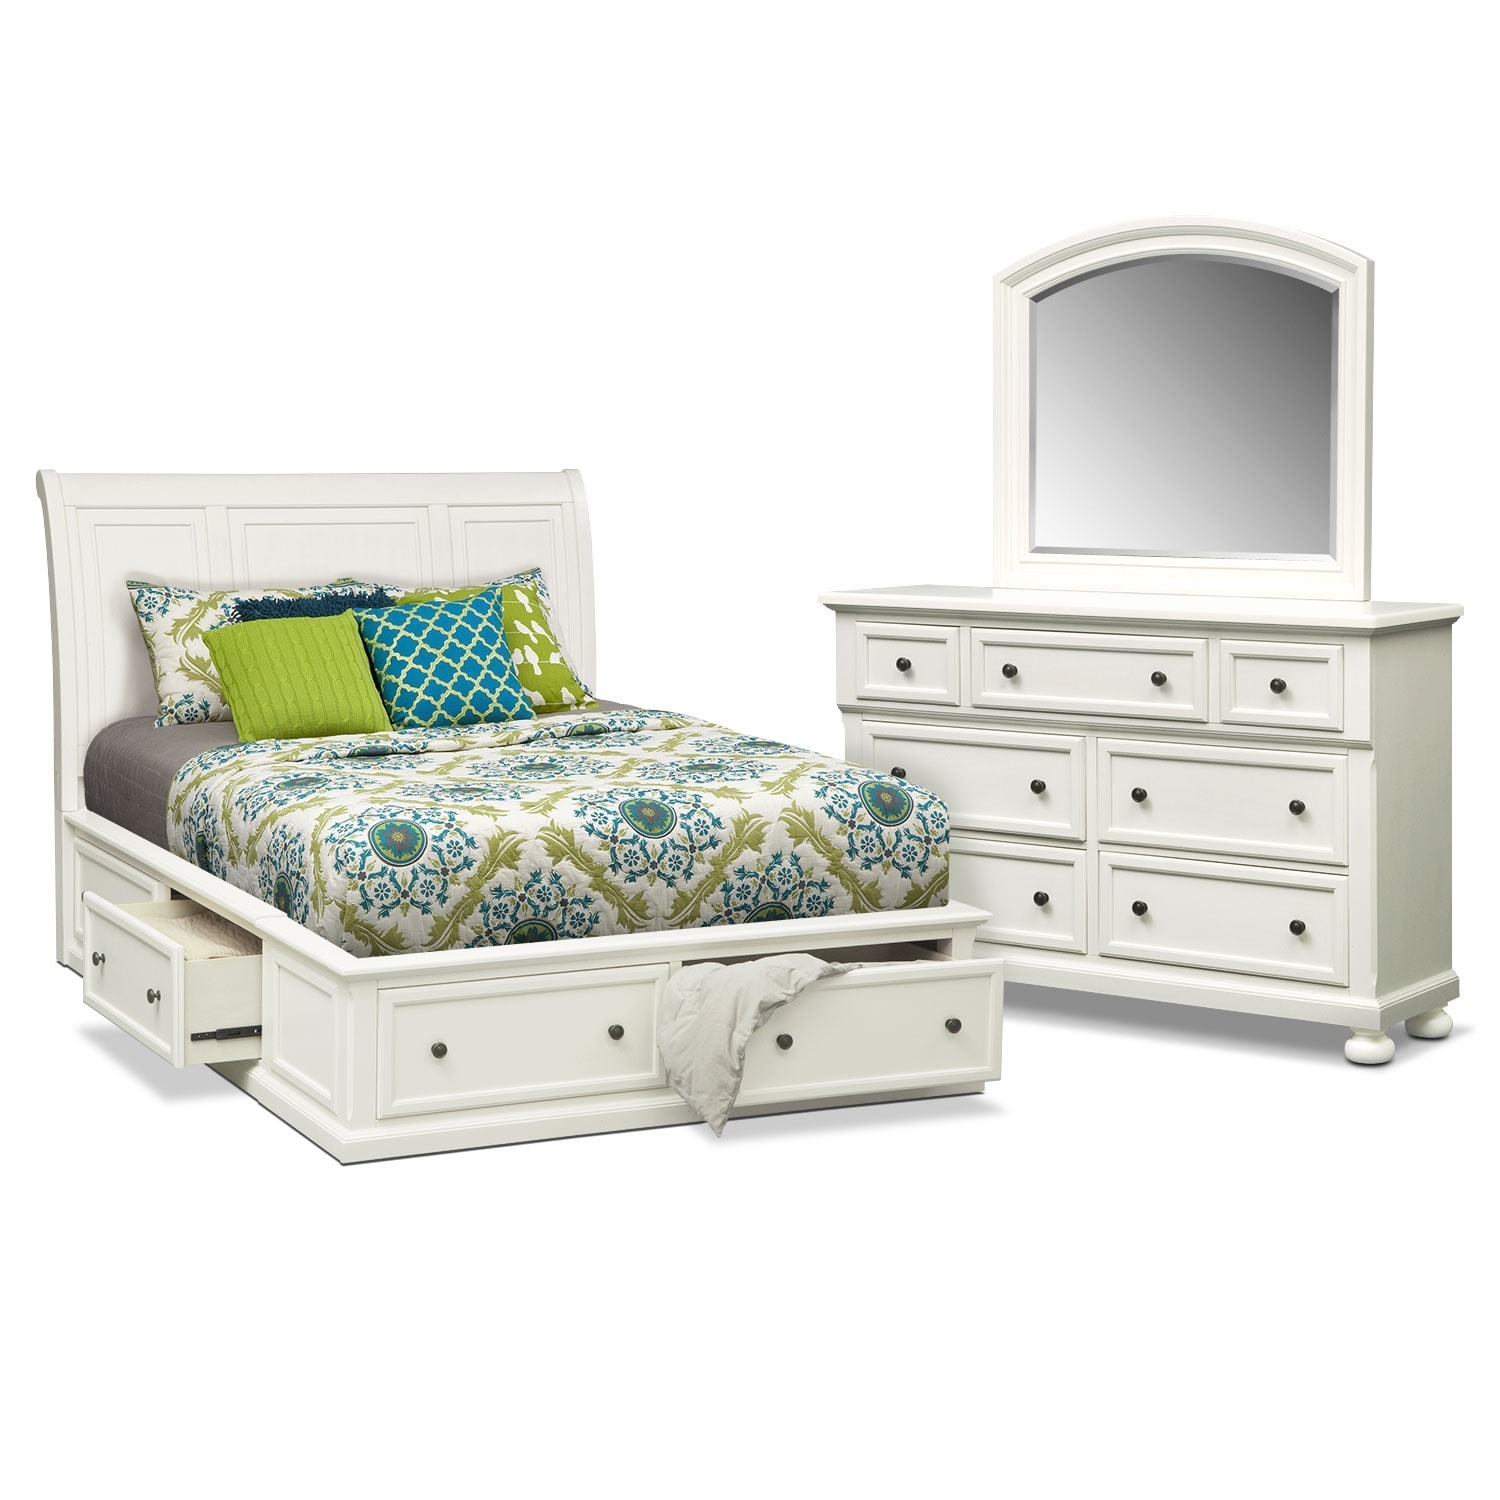 Hanover 5 piece queen storage bedroom set white value for White queen bedroom set